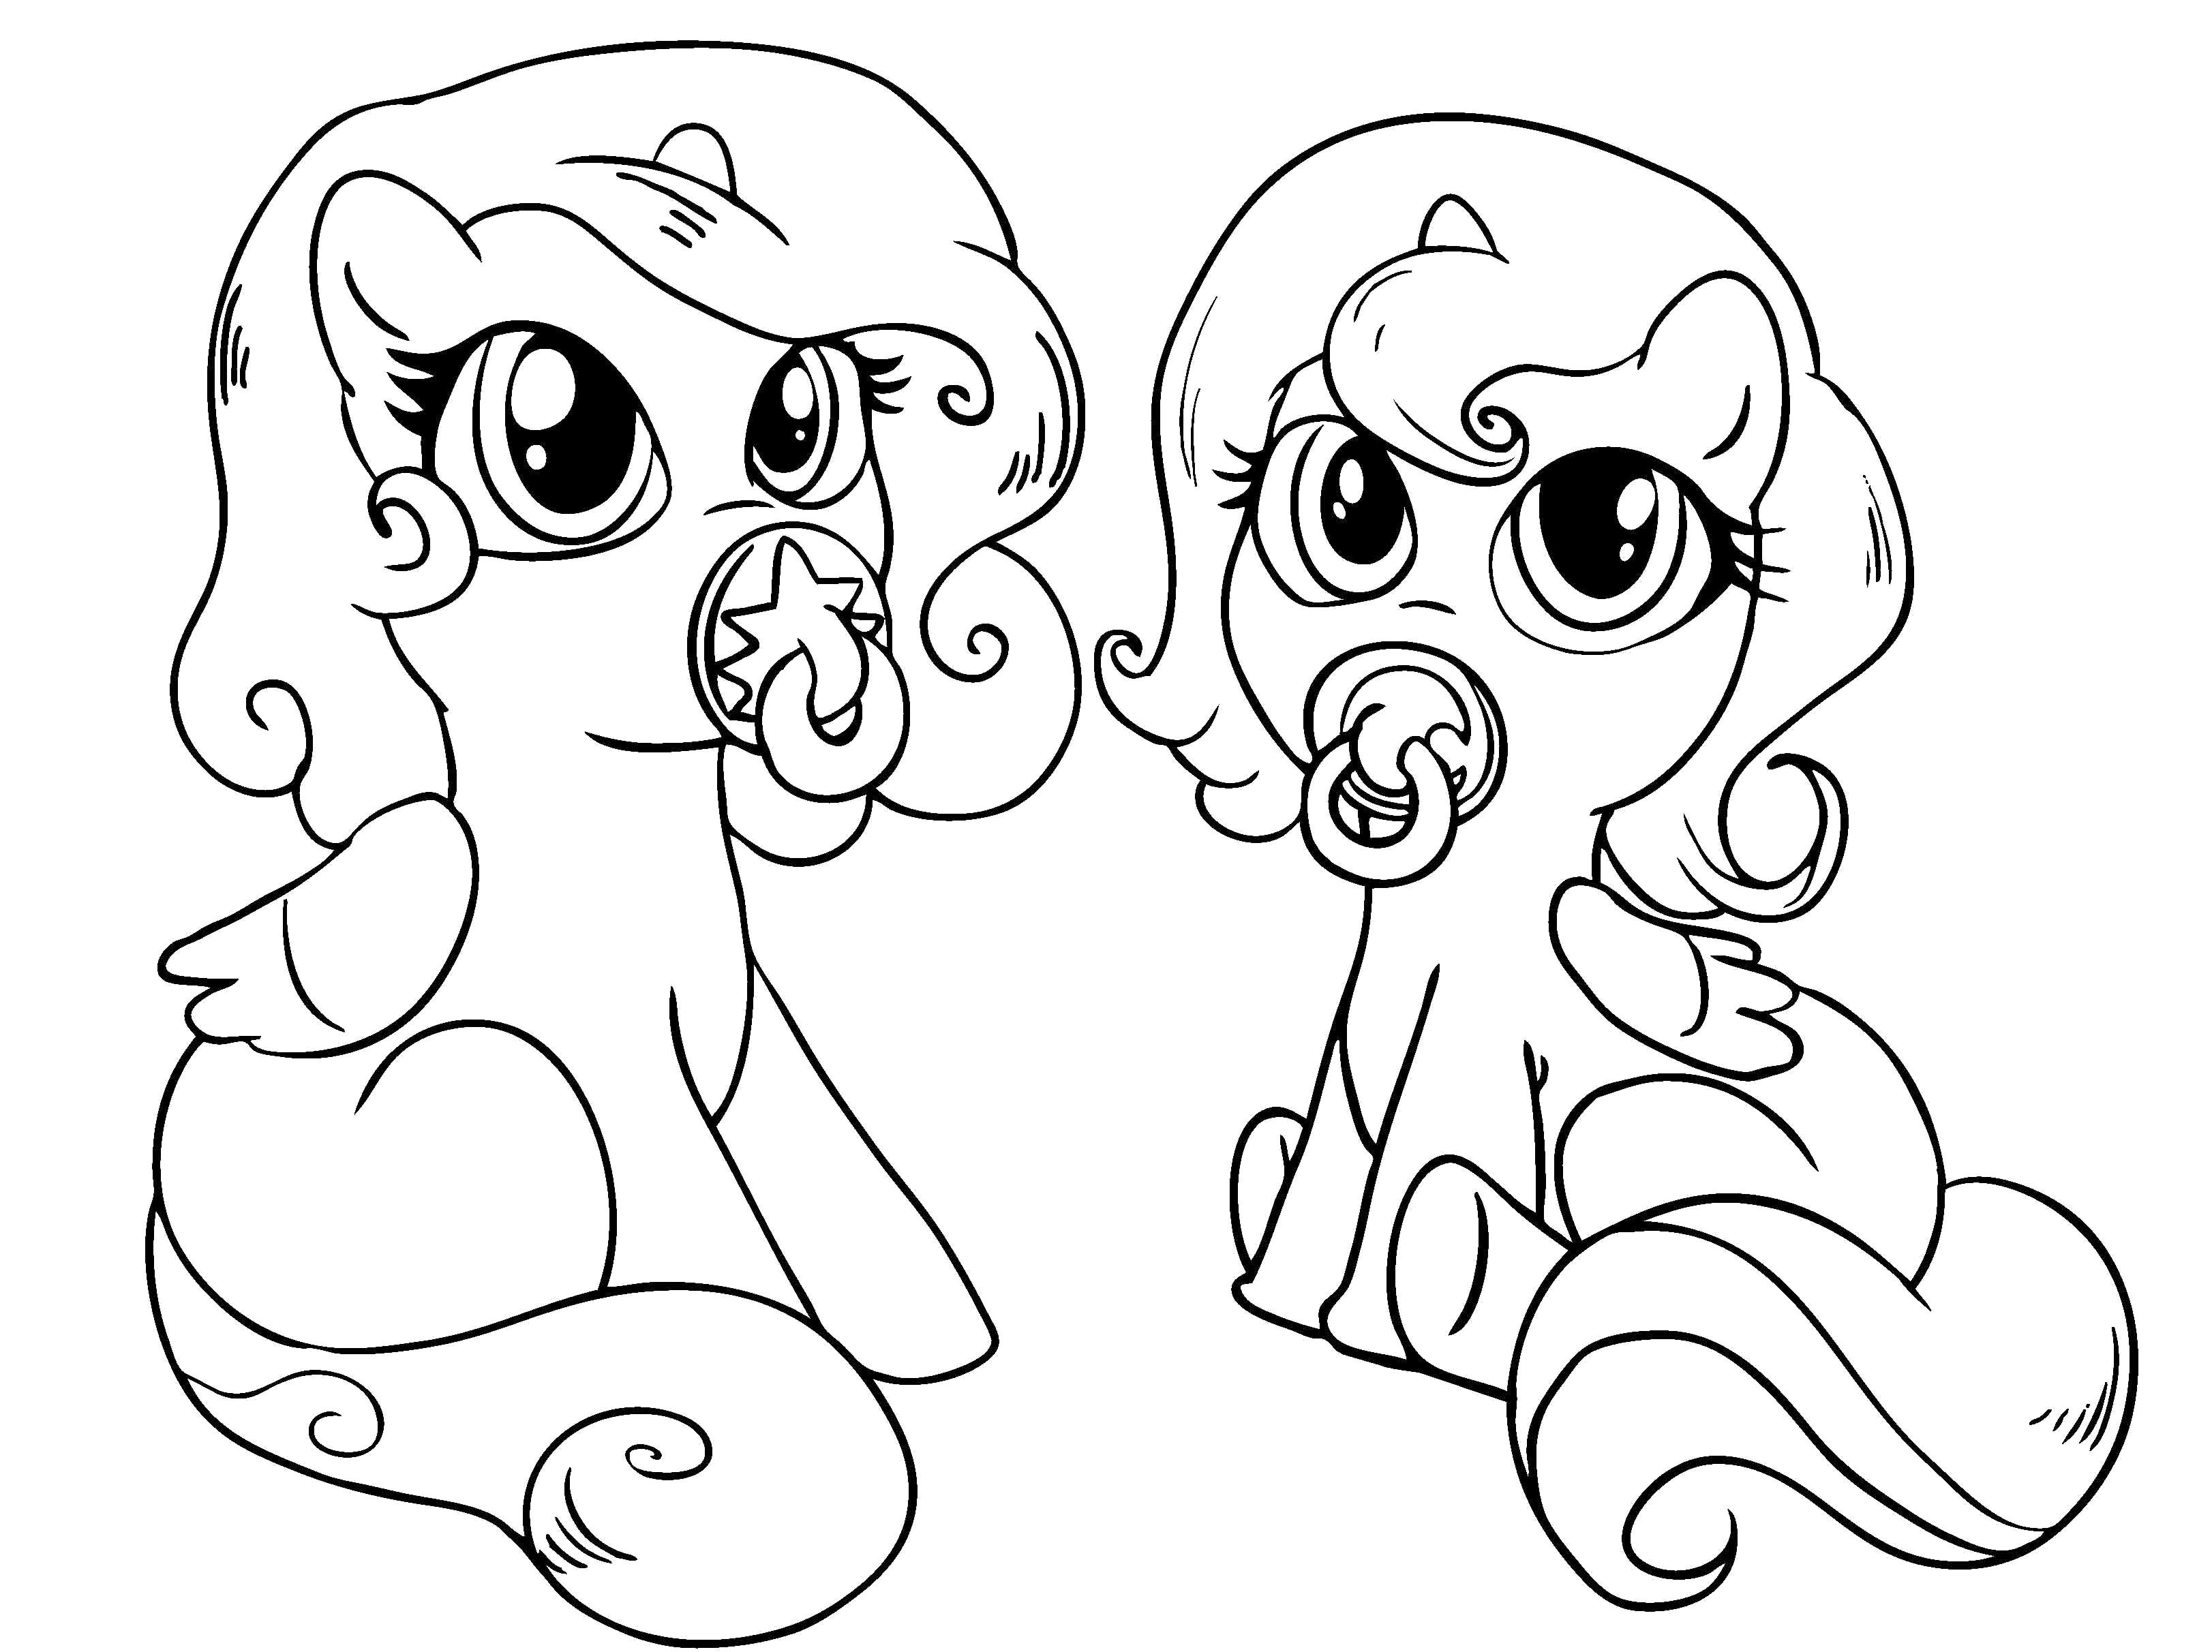 Ausmalbilder My Little Pony Baby : Baby Little Pony Coloring Pages My Little Pony Car Coloring Pages